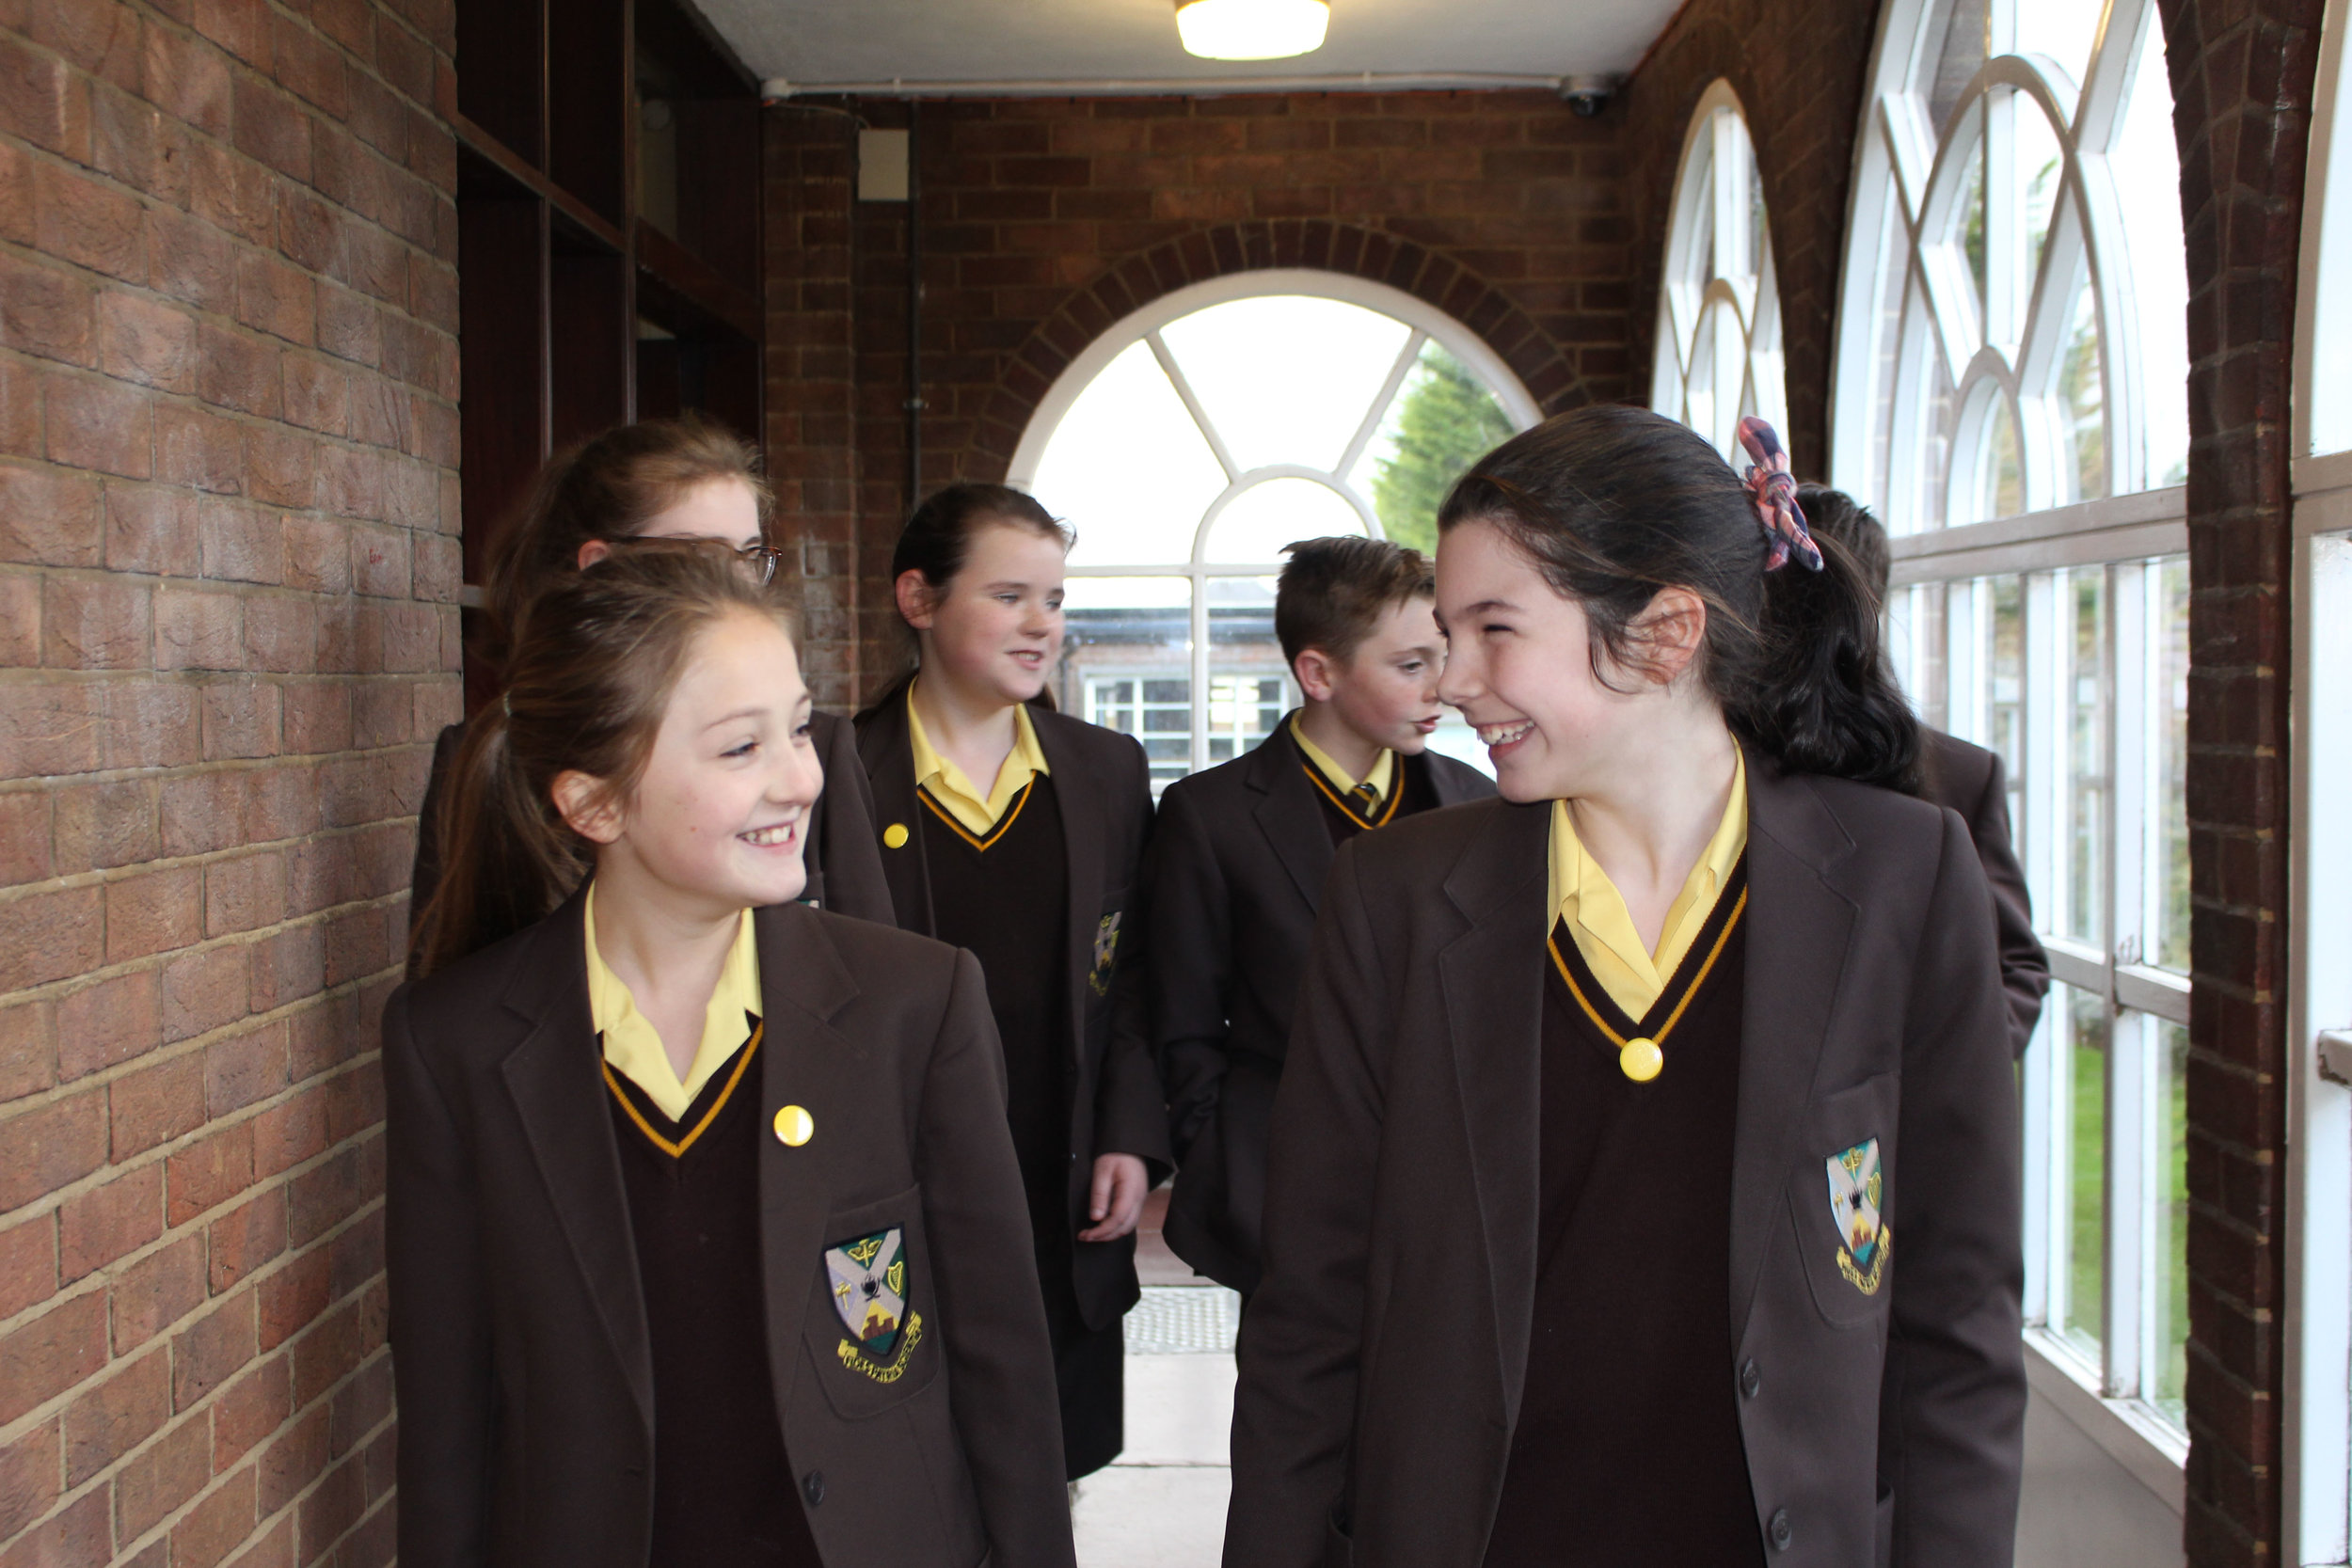 Pupils in School Uniform